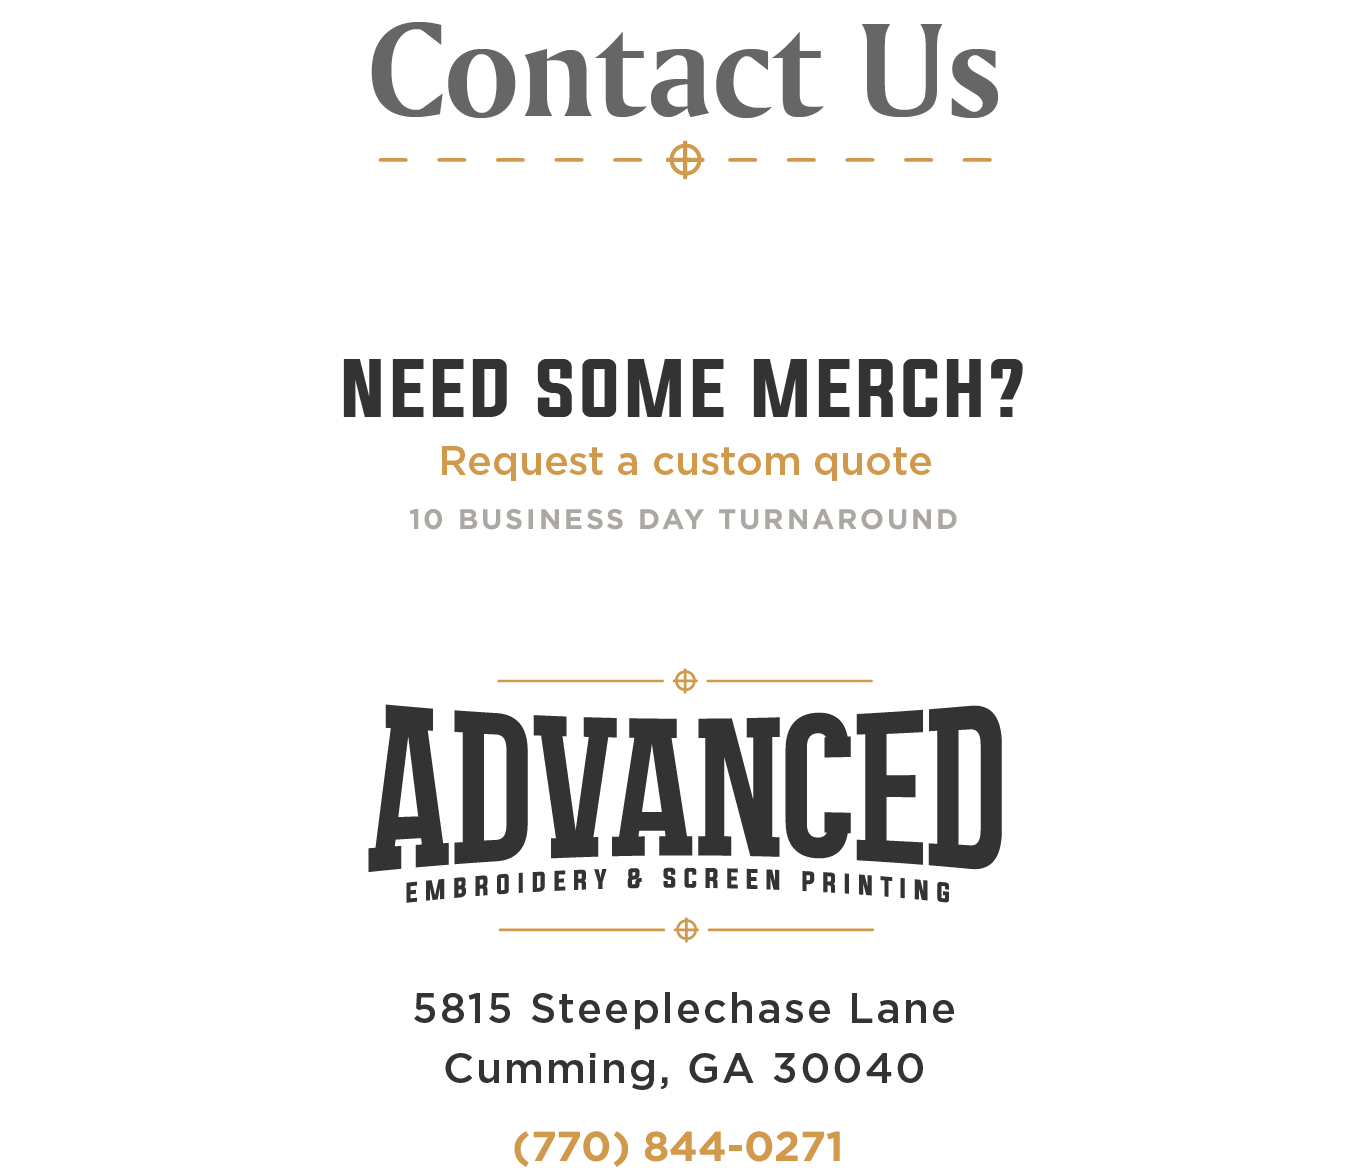 Contact Us | Advanced Embroidery and Screen Printing